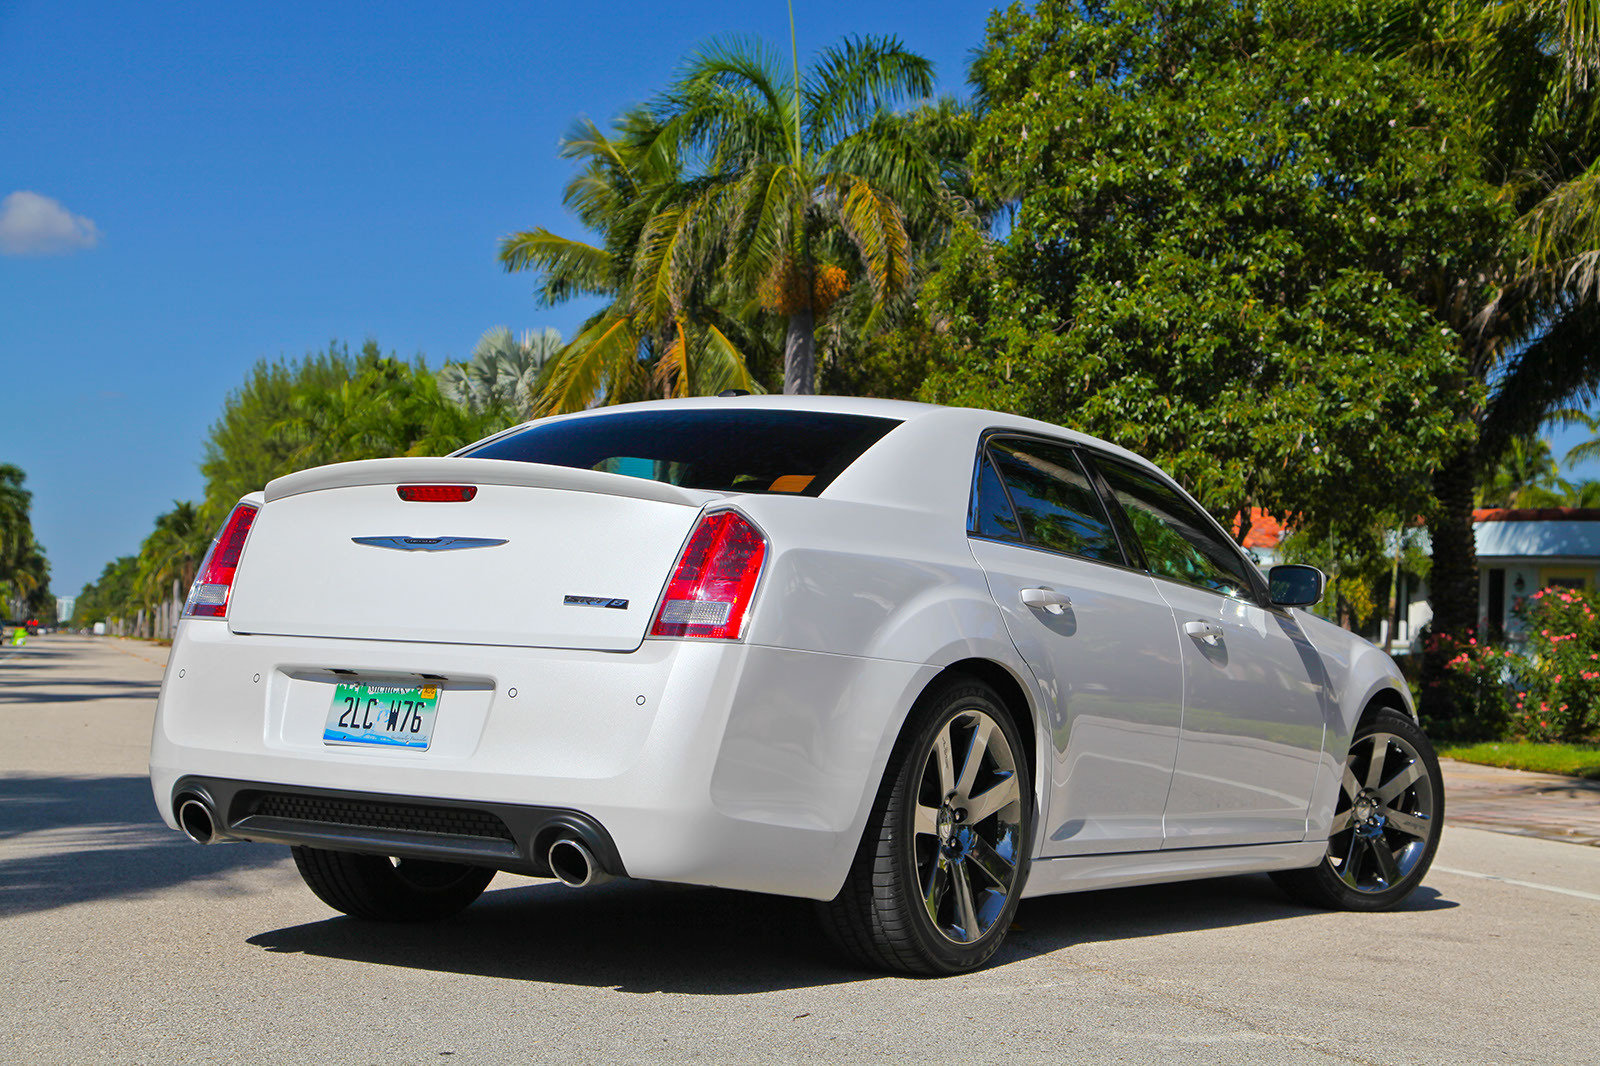 2013 chrysler 300 srt8 picture 528584 car review top speed. Cars Review. Best American Auto & Cars Review